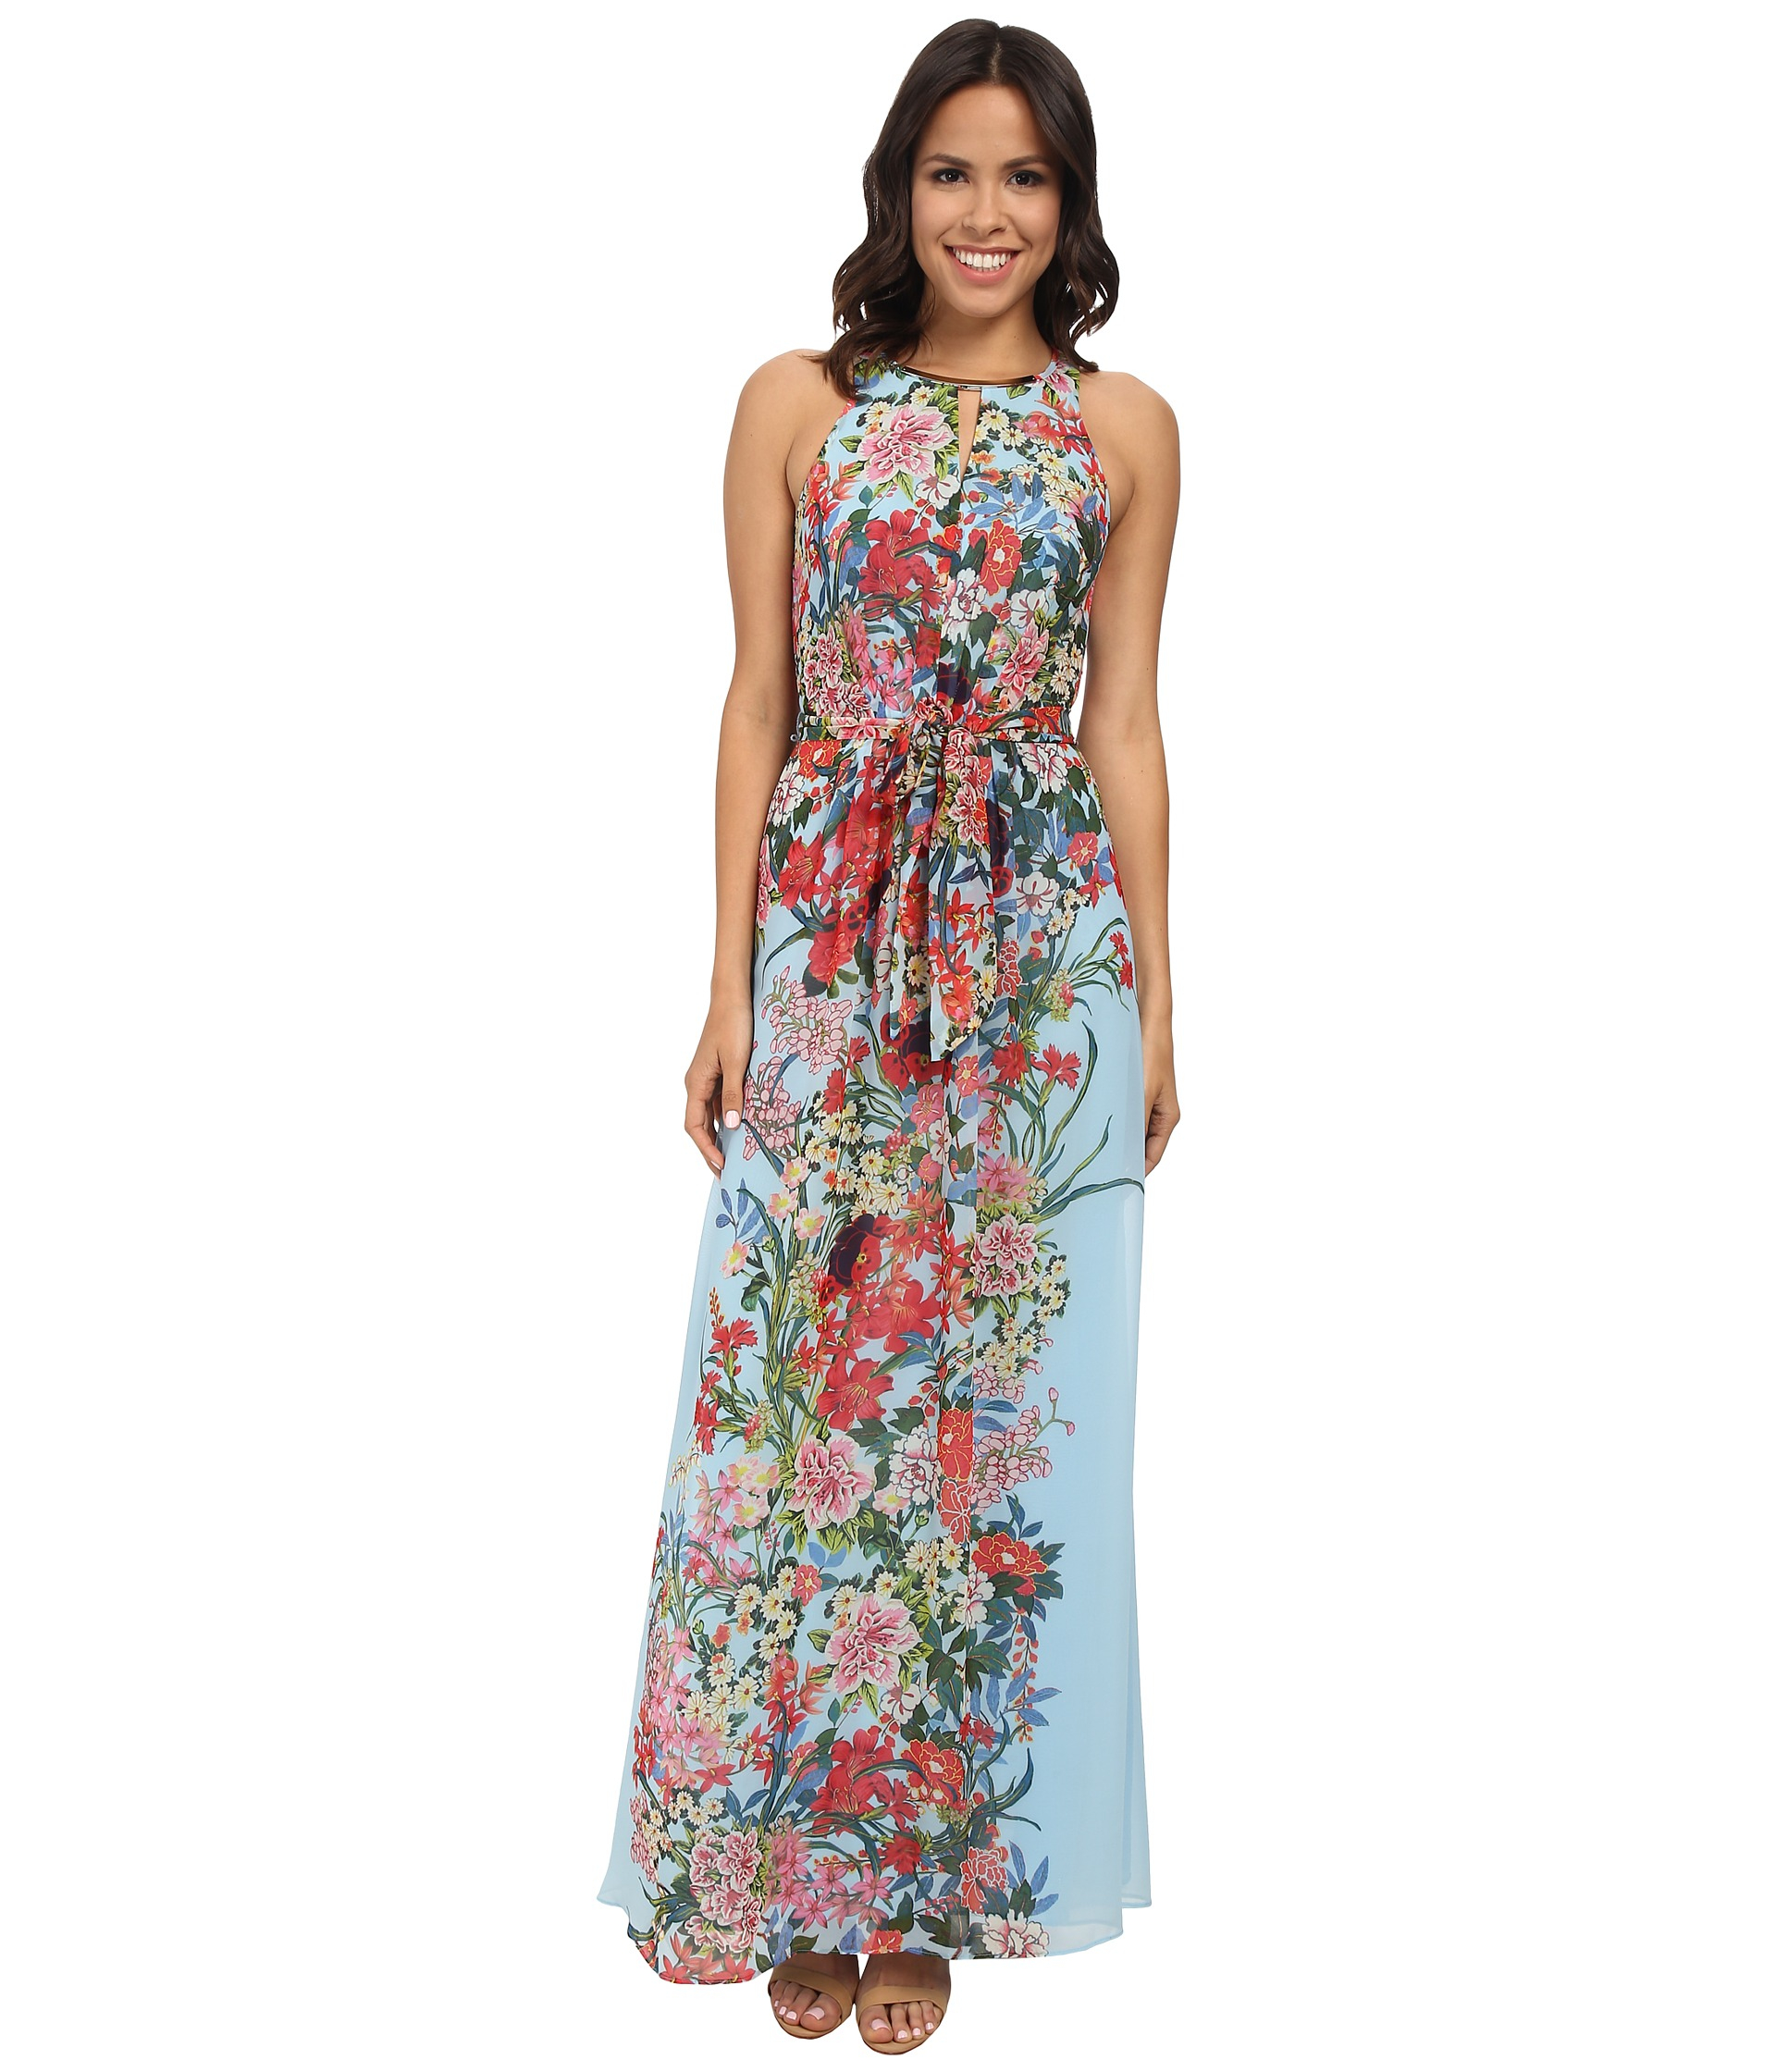 Lyst - Adrianna Papell Printed Multi Floral Halter Long Maxi Dress ...